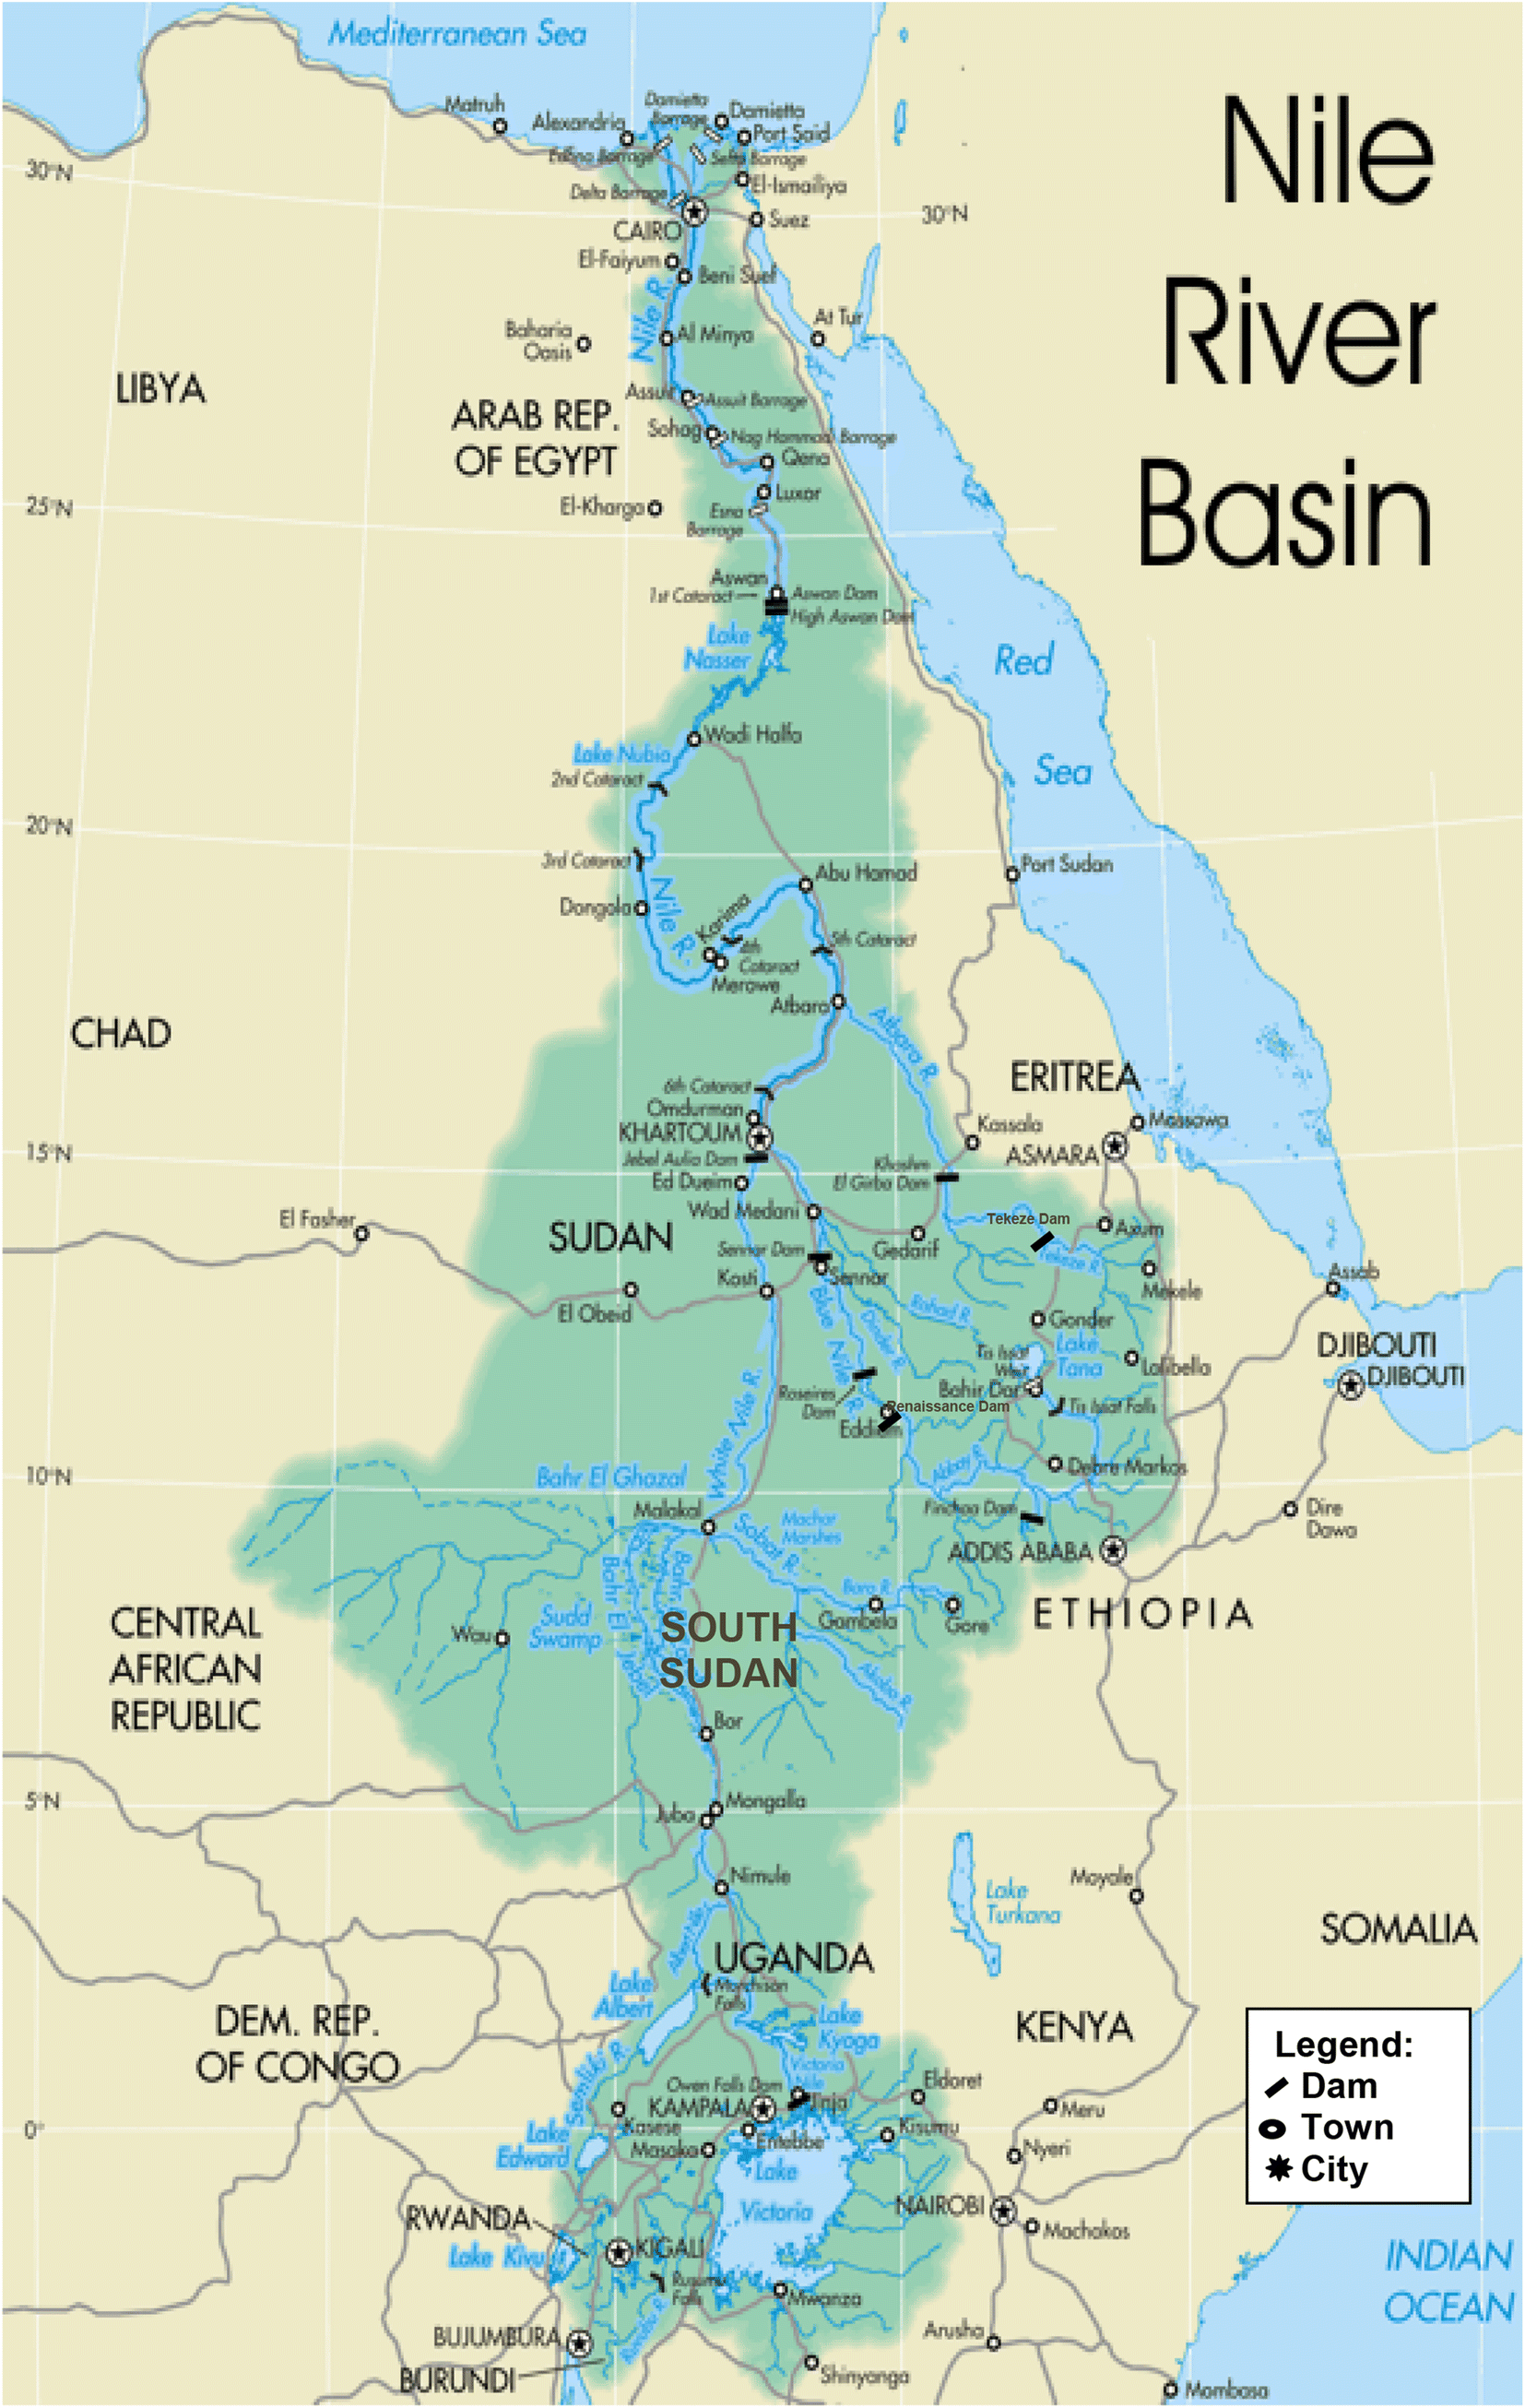 Estimation of evaporation losses from water bodies in the Sudan and